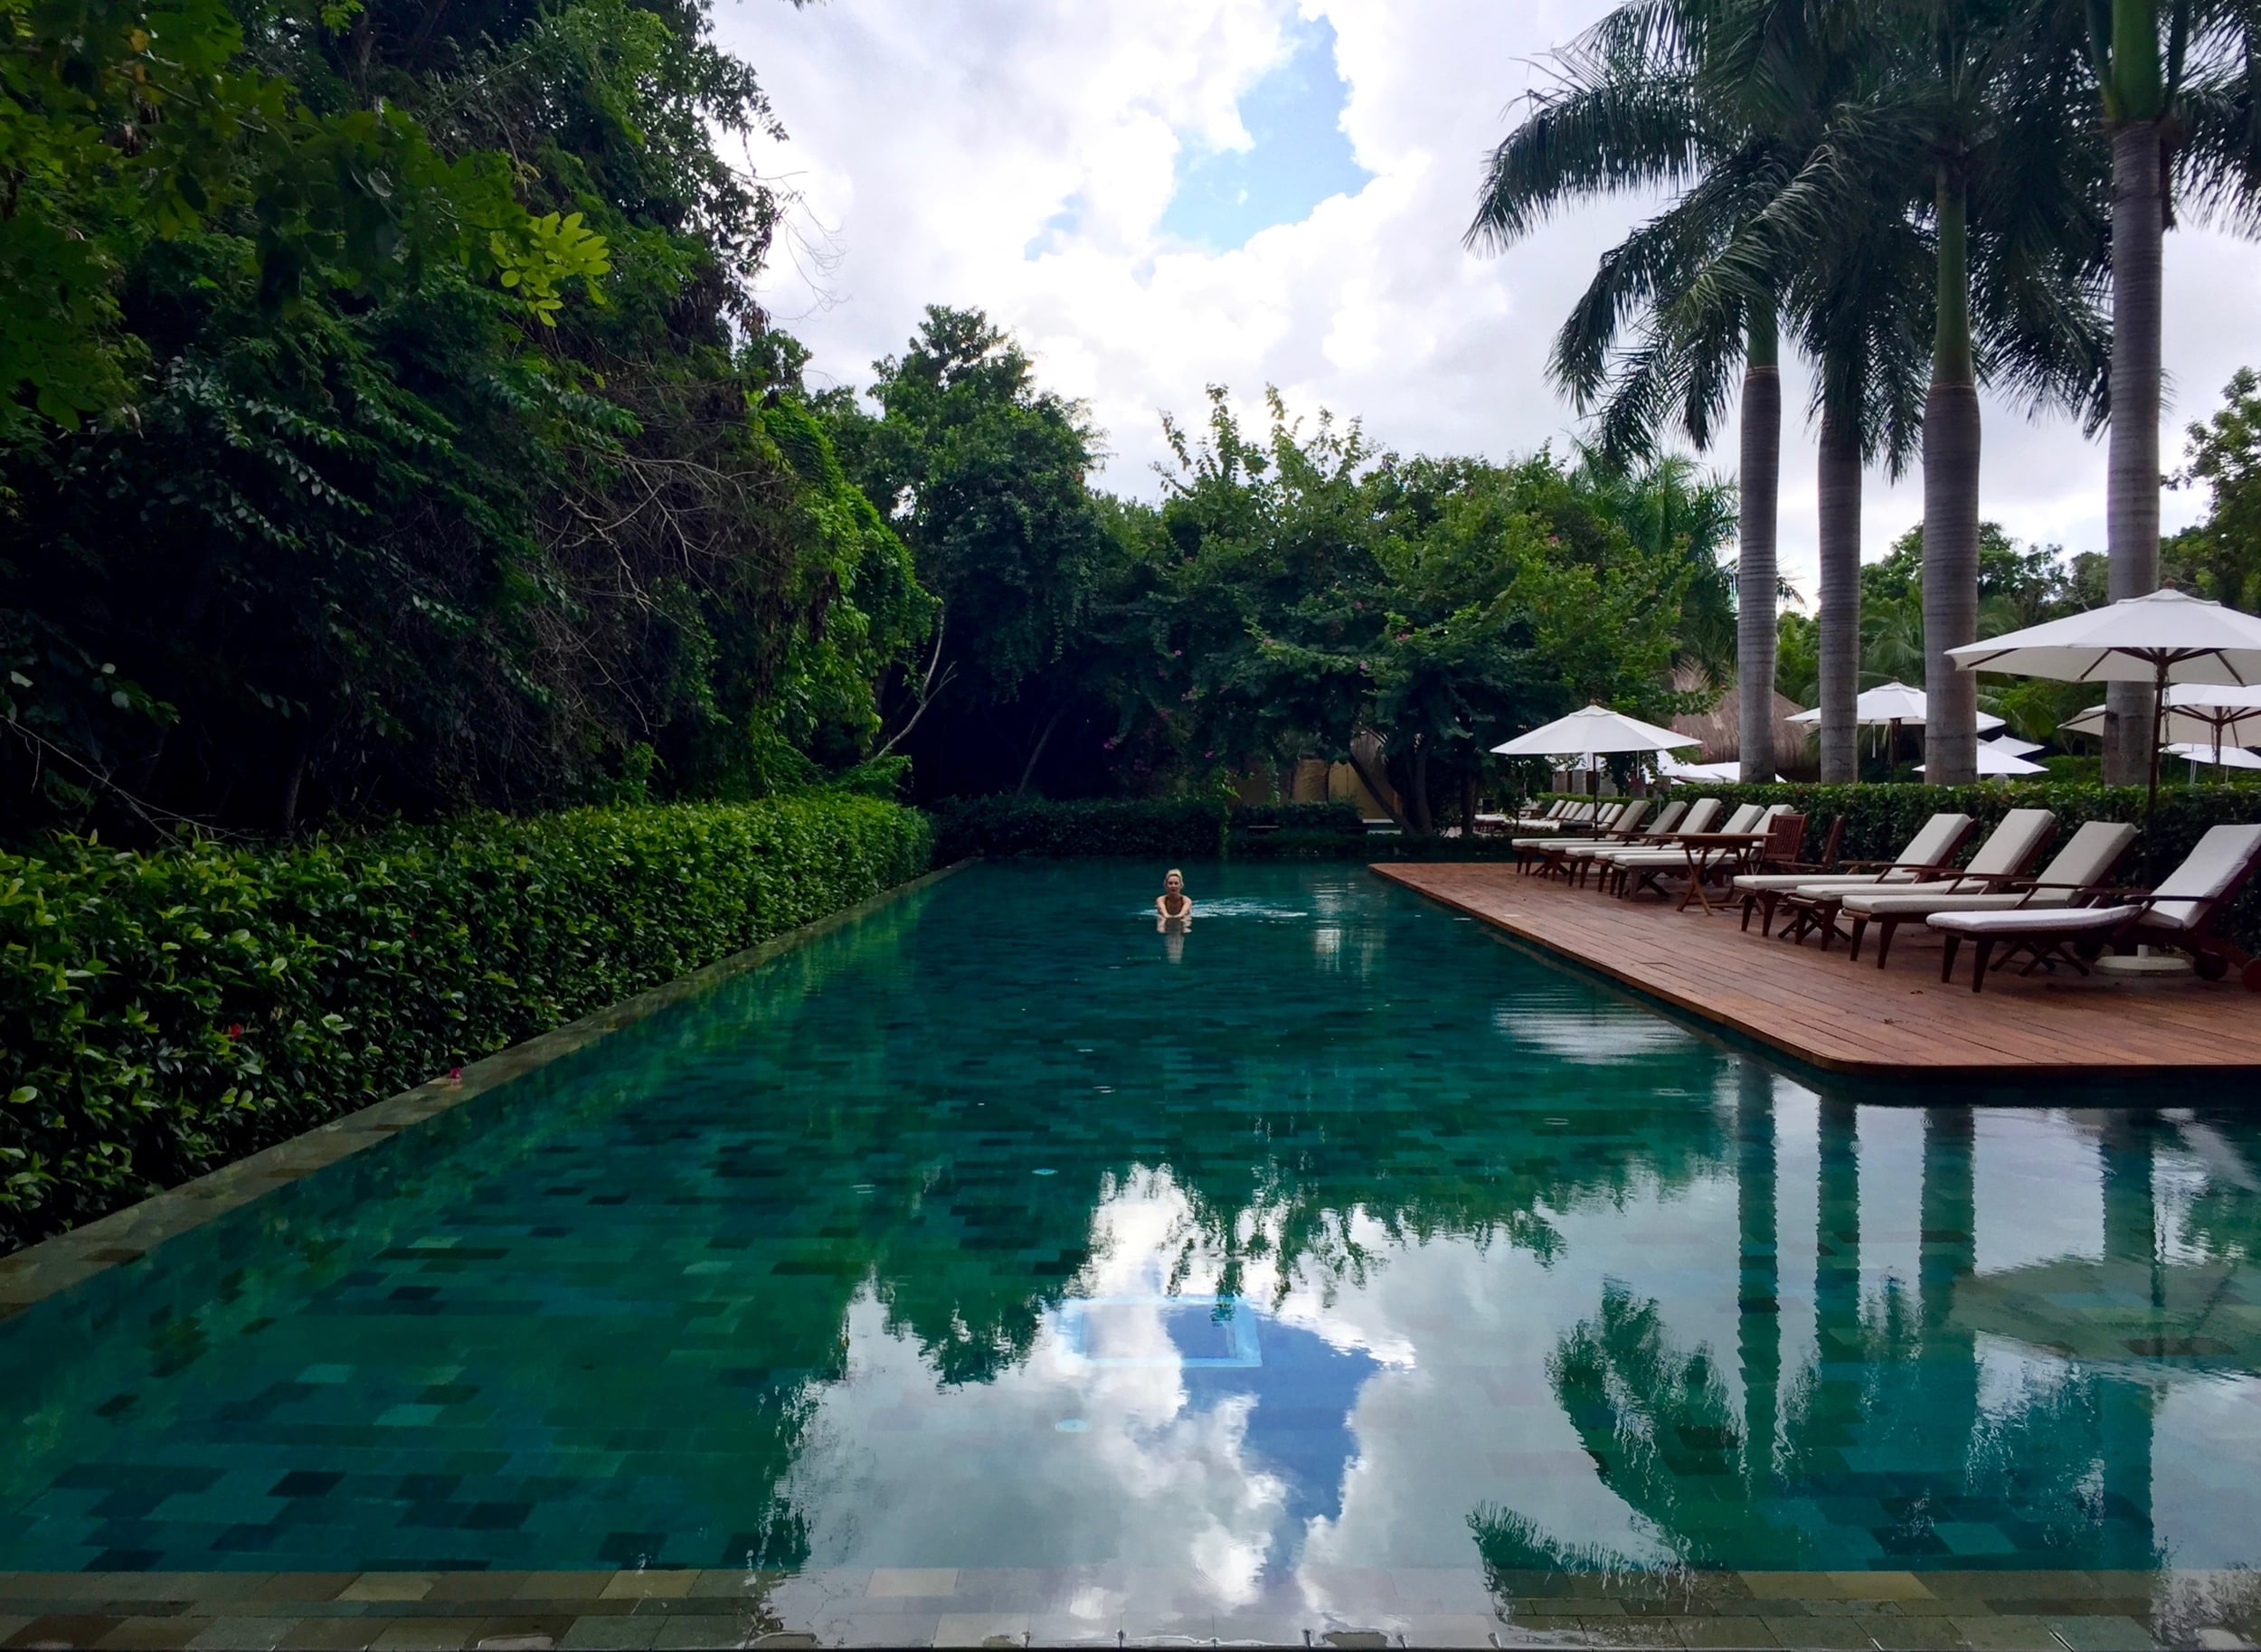 The zen pool, aptly situated in the Mayan jungle, at Grand Velas Riviera Maya { read about Grand Velas here }.